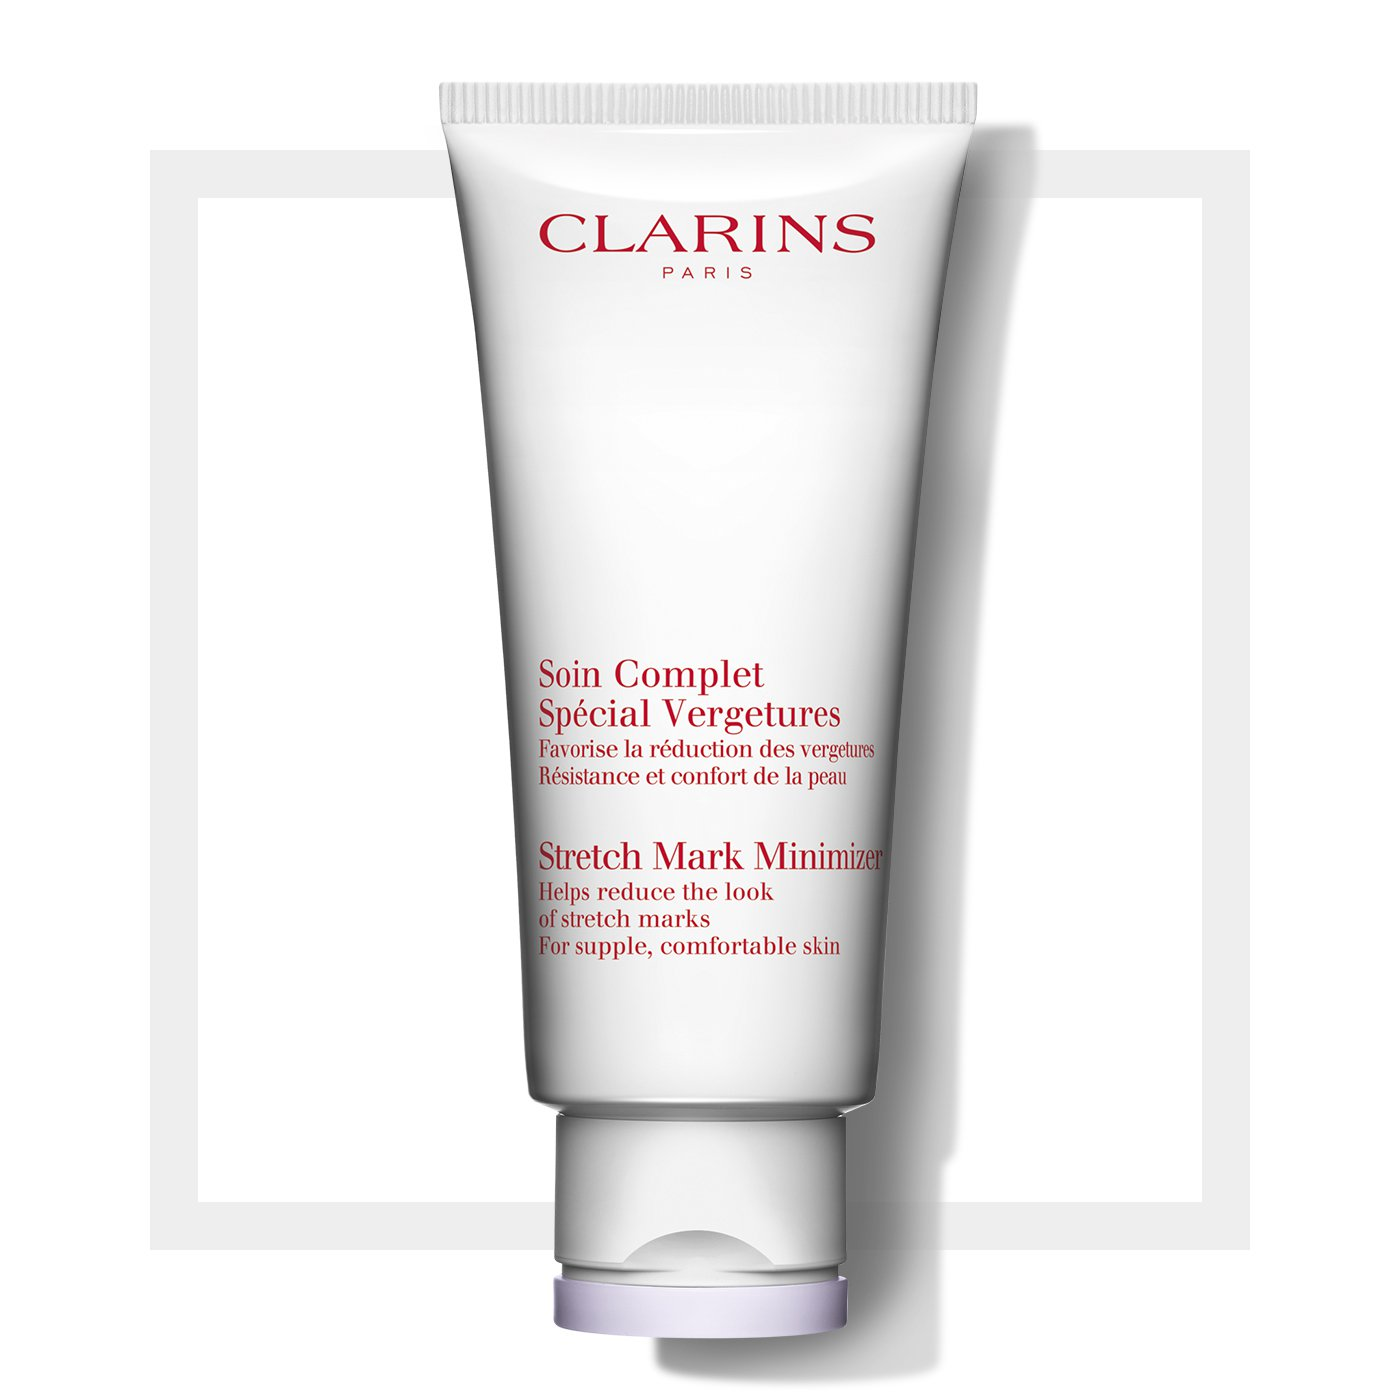 clarins paris